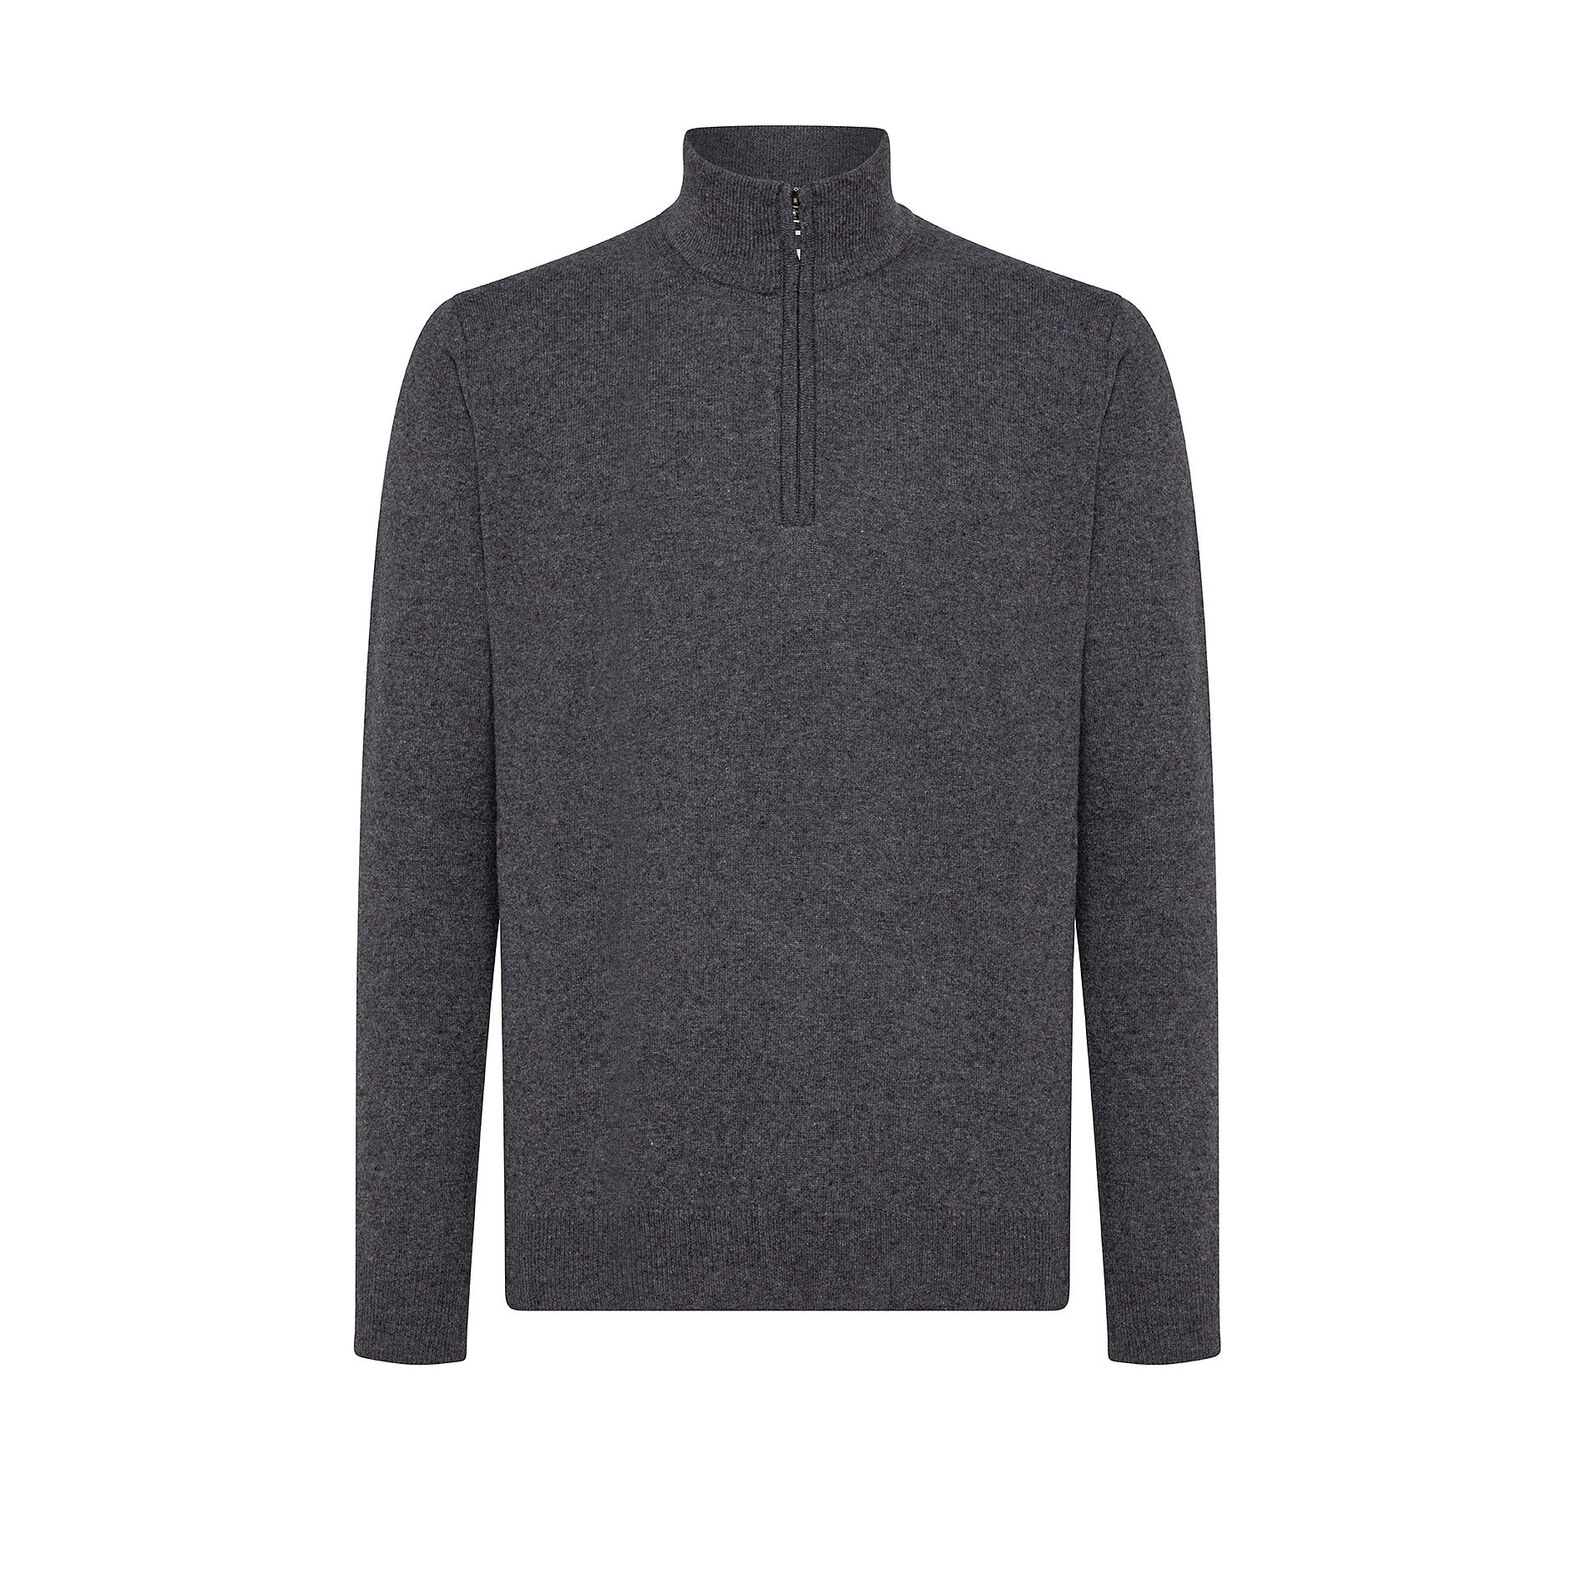 Cashmere blend pullover with high neck